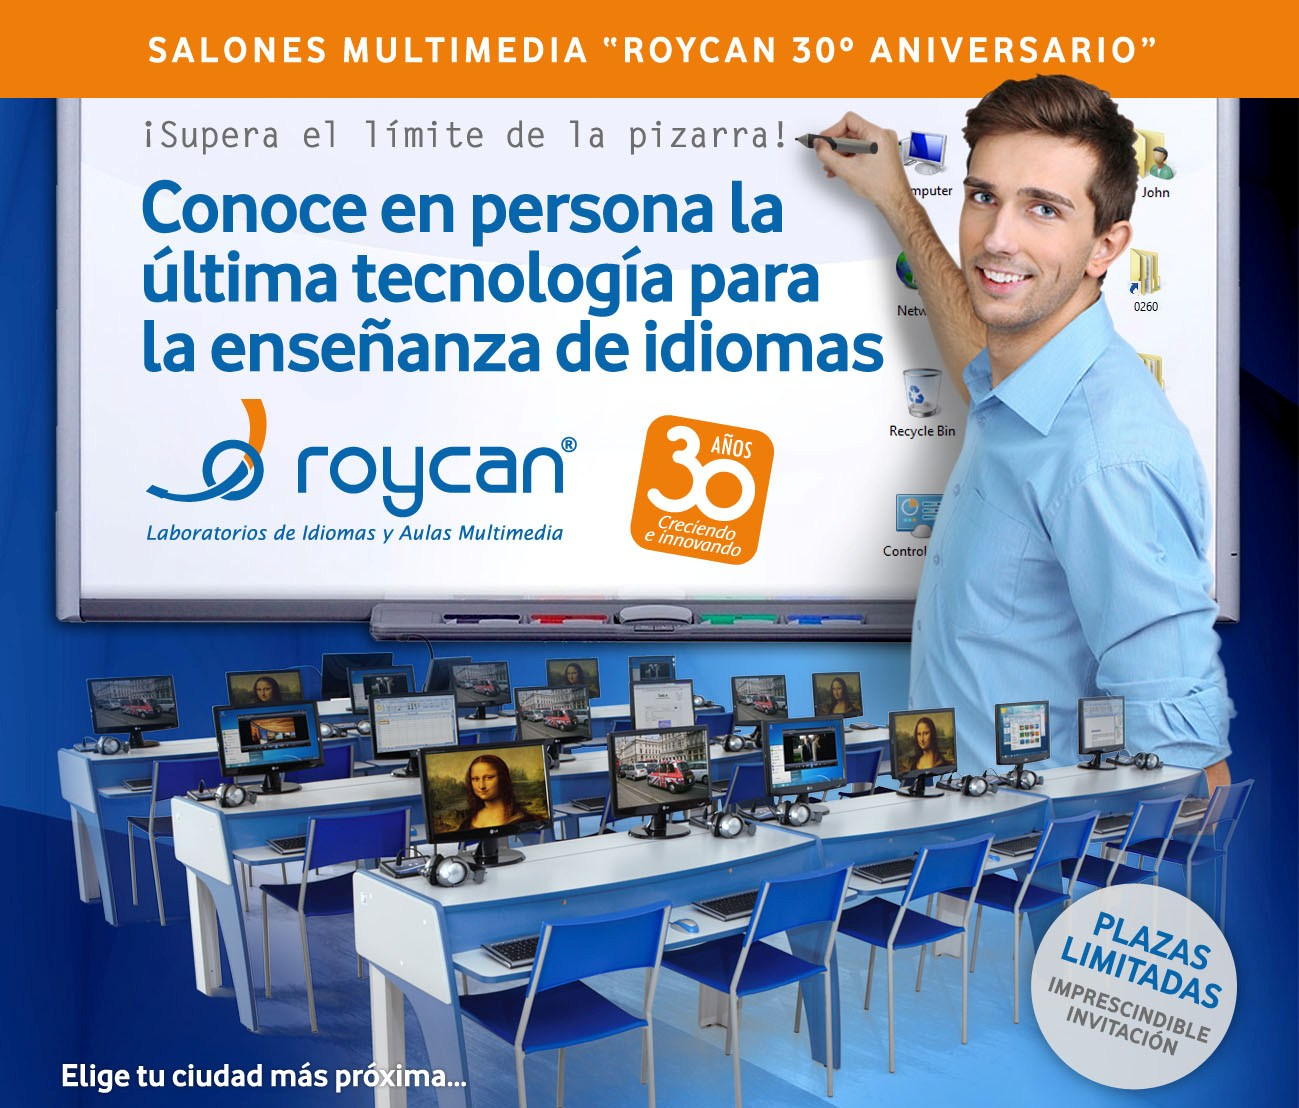 <strong>Roycan</strong> gets close to you with the <strong>Salones Multimedia</strong> (Multimedia meetings) of its <strong>30th anniversary</strong>.